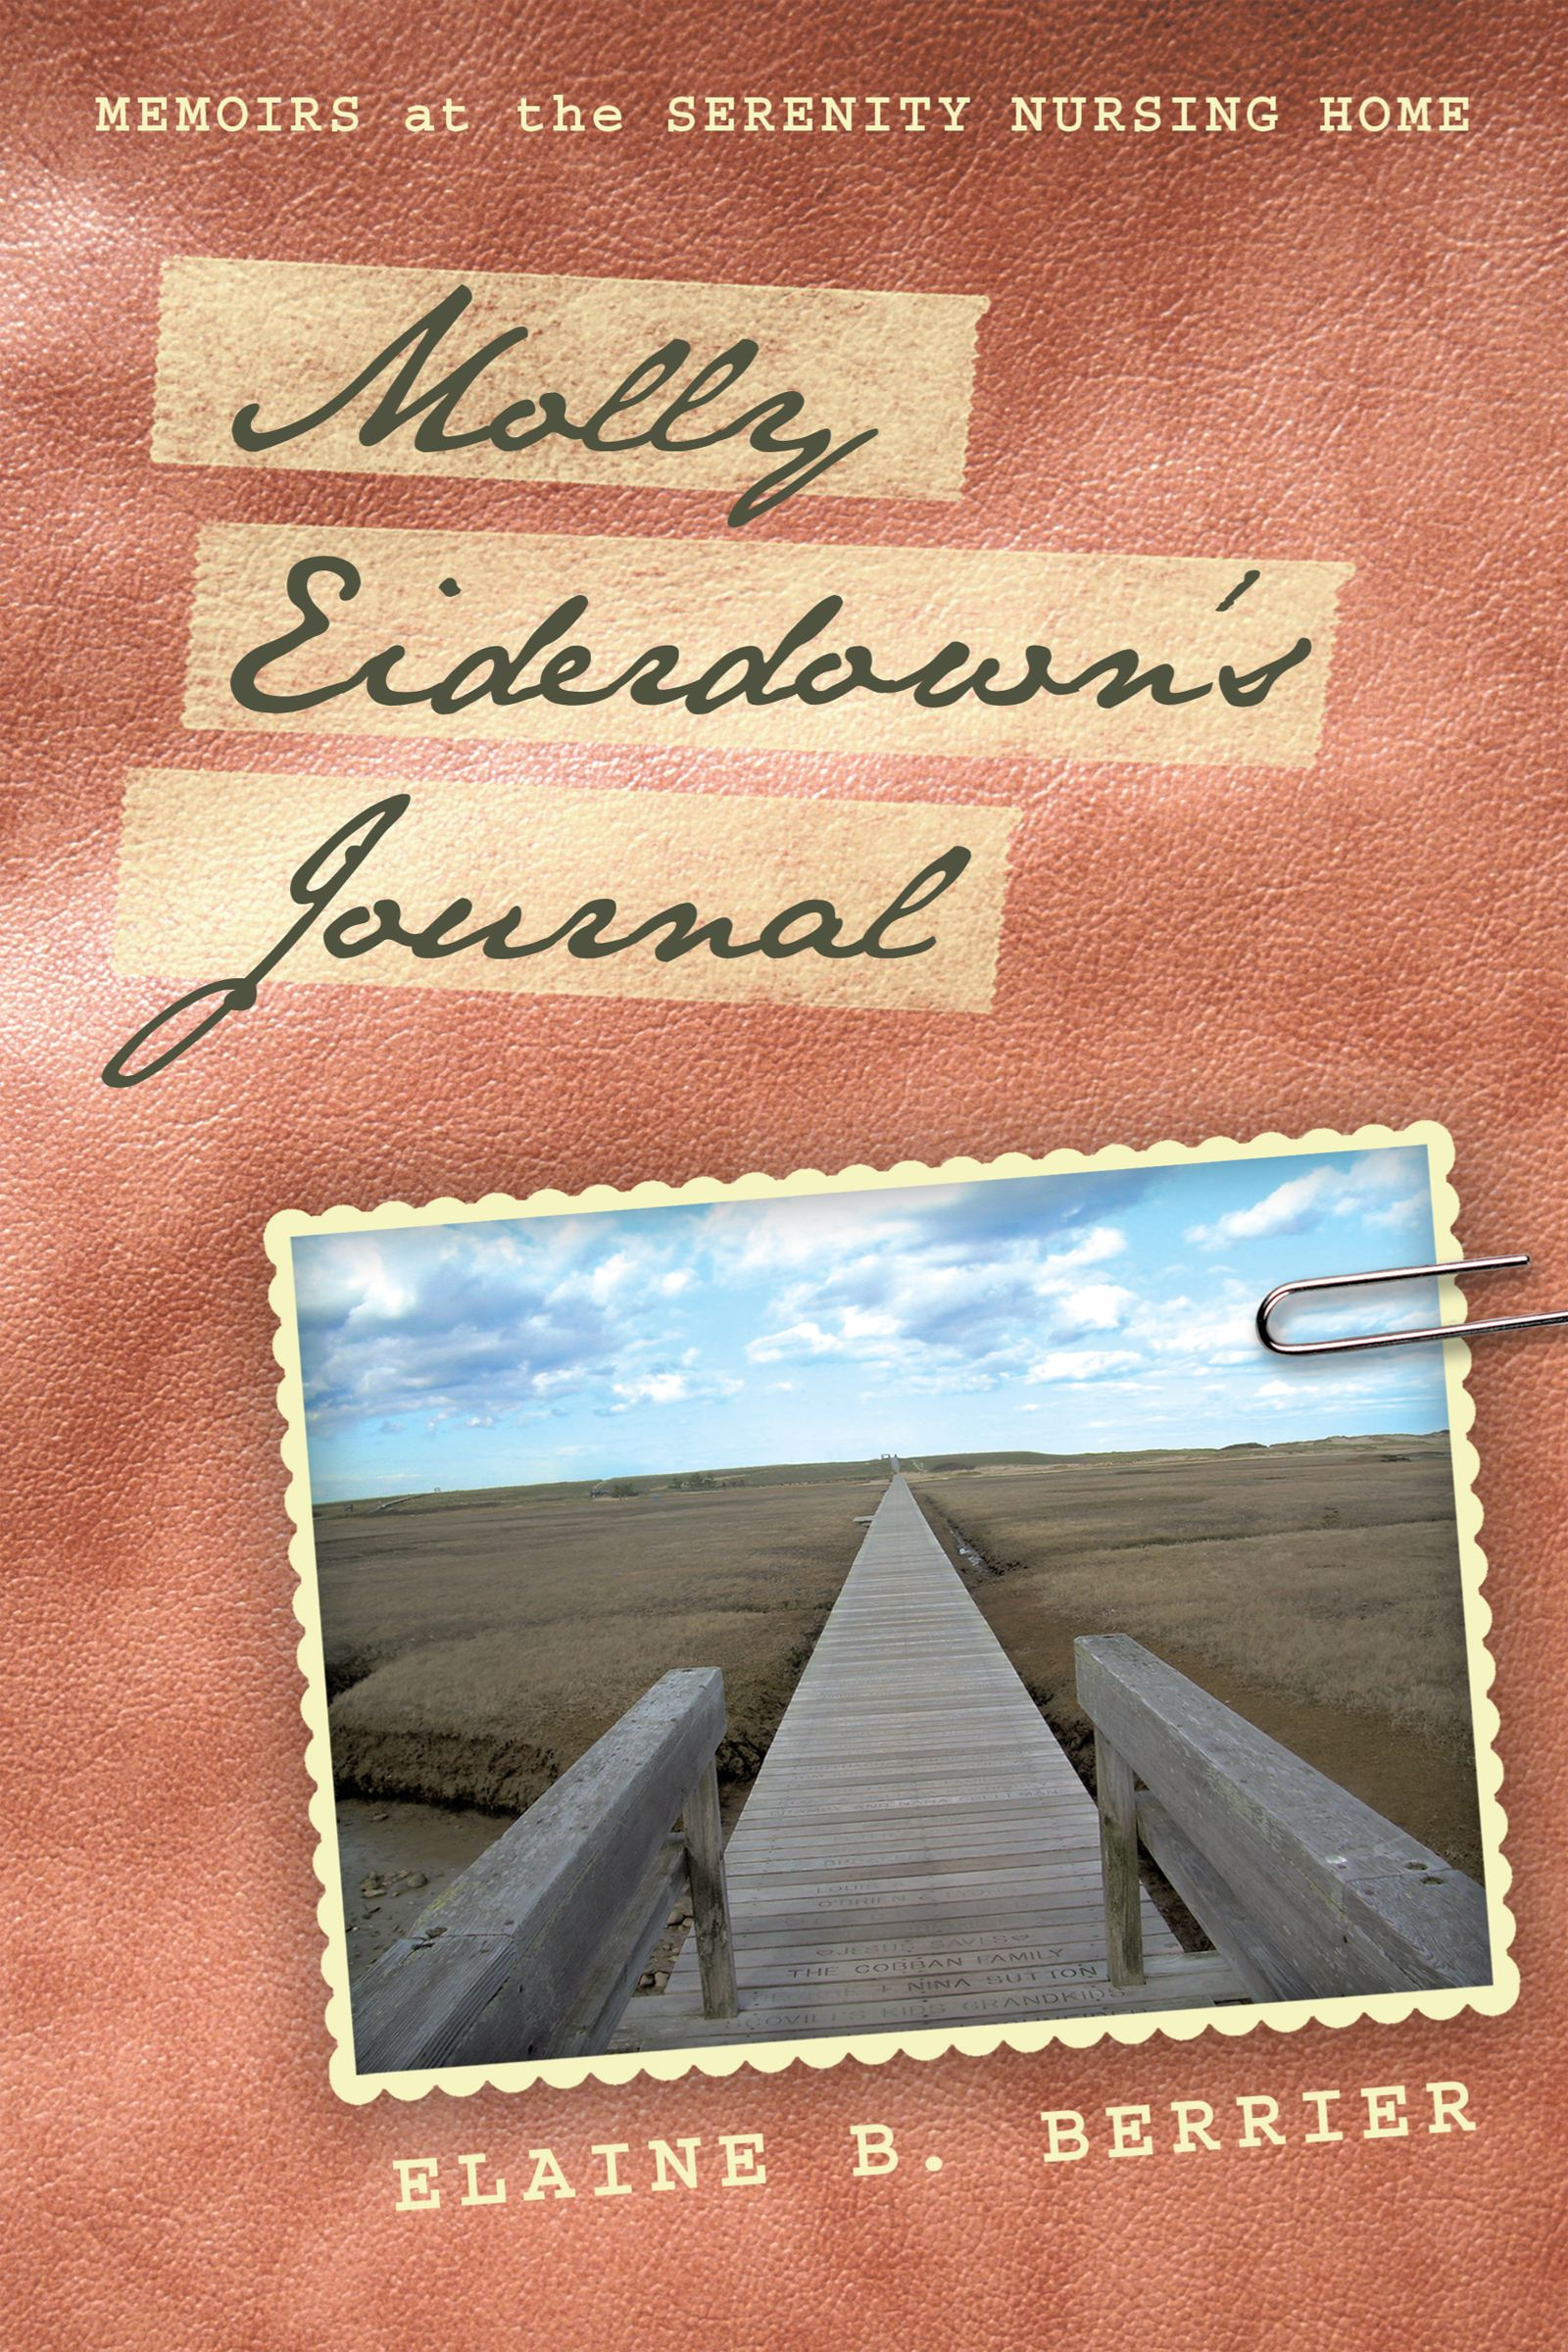 Molly Eiderdown's Journal By: Elaine B. Berrier